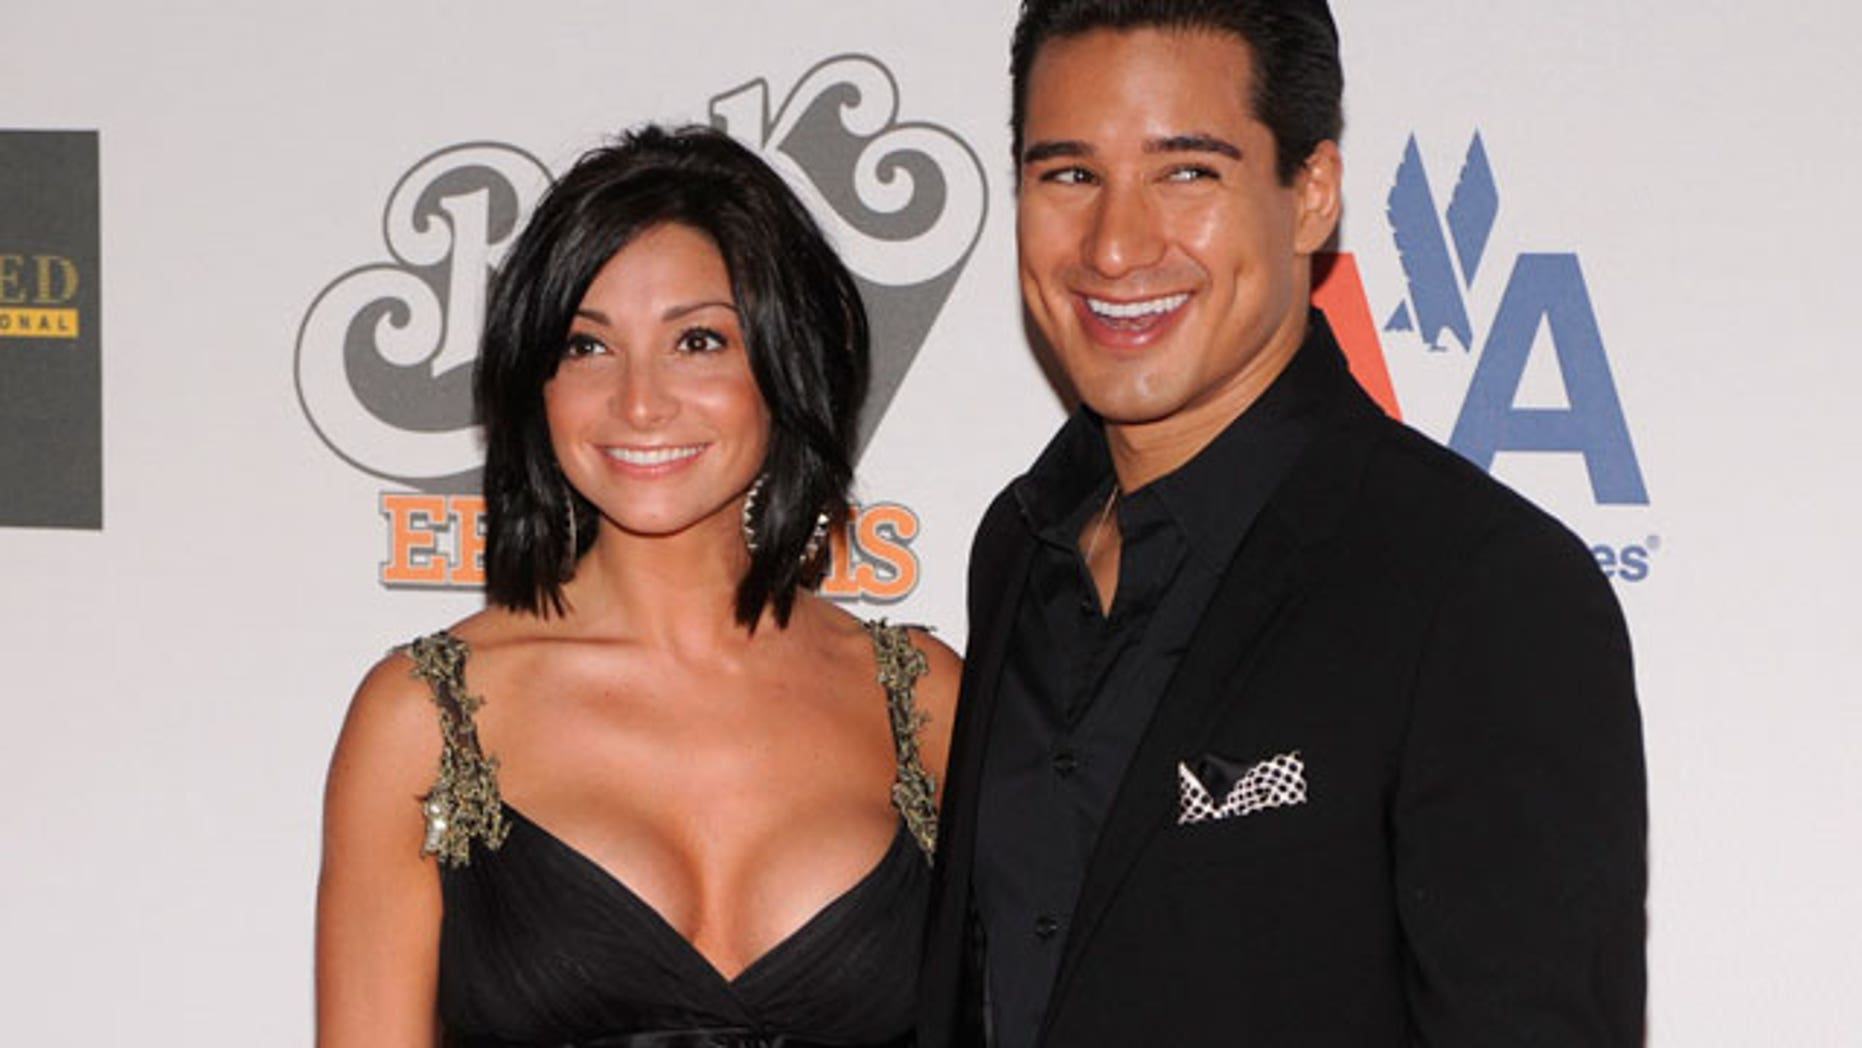 Body Obsessed Mario Lopez Persuaded Girlfriend To Lose Weight Have Plastic Surgery Fox News